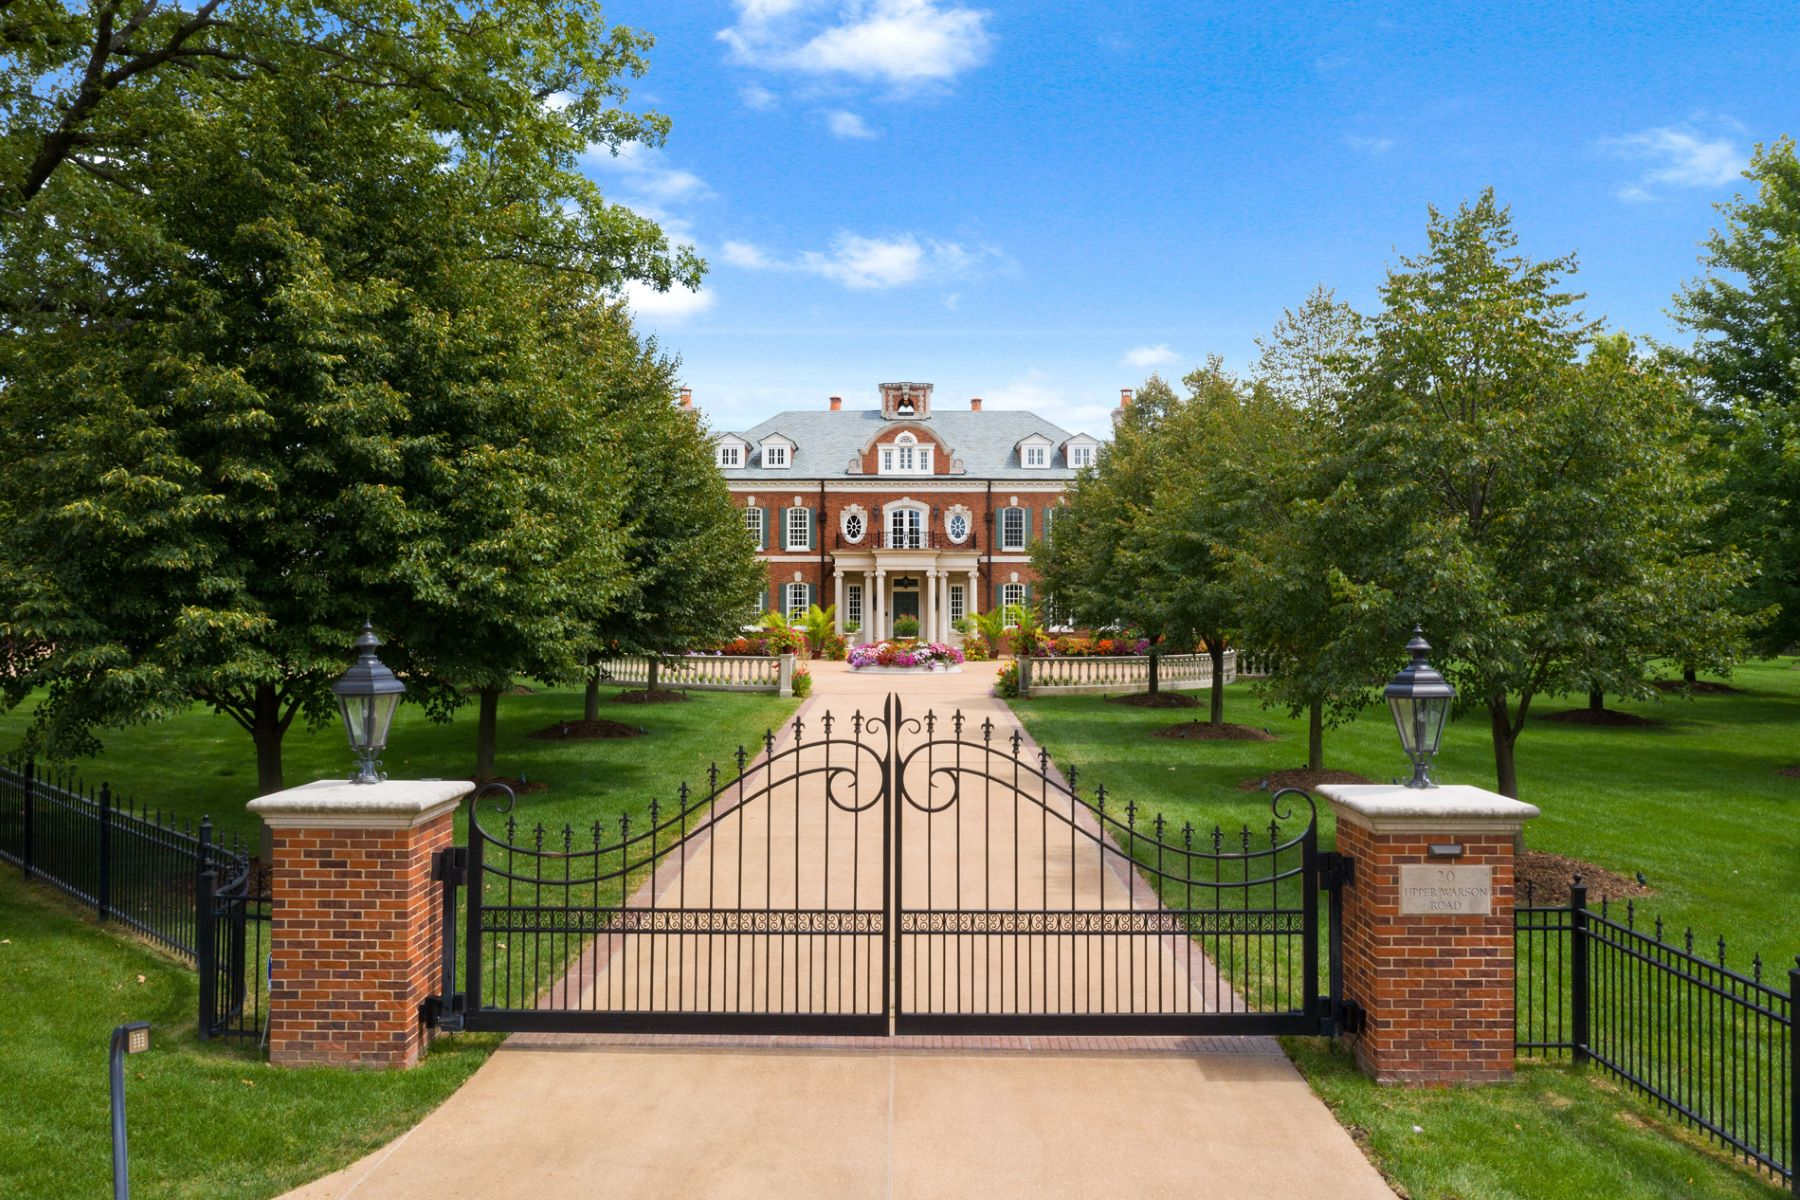 Single Family Homes için Satış at The Westbury Estate: A Legacy Property in the Heart of Ladue 20 Upper Warson Road, Ladue, Missouri 63124 Amerika Birleşik Devletleri